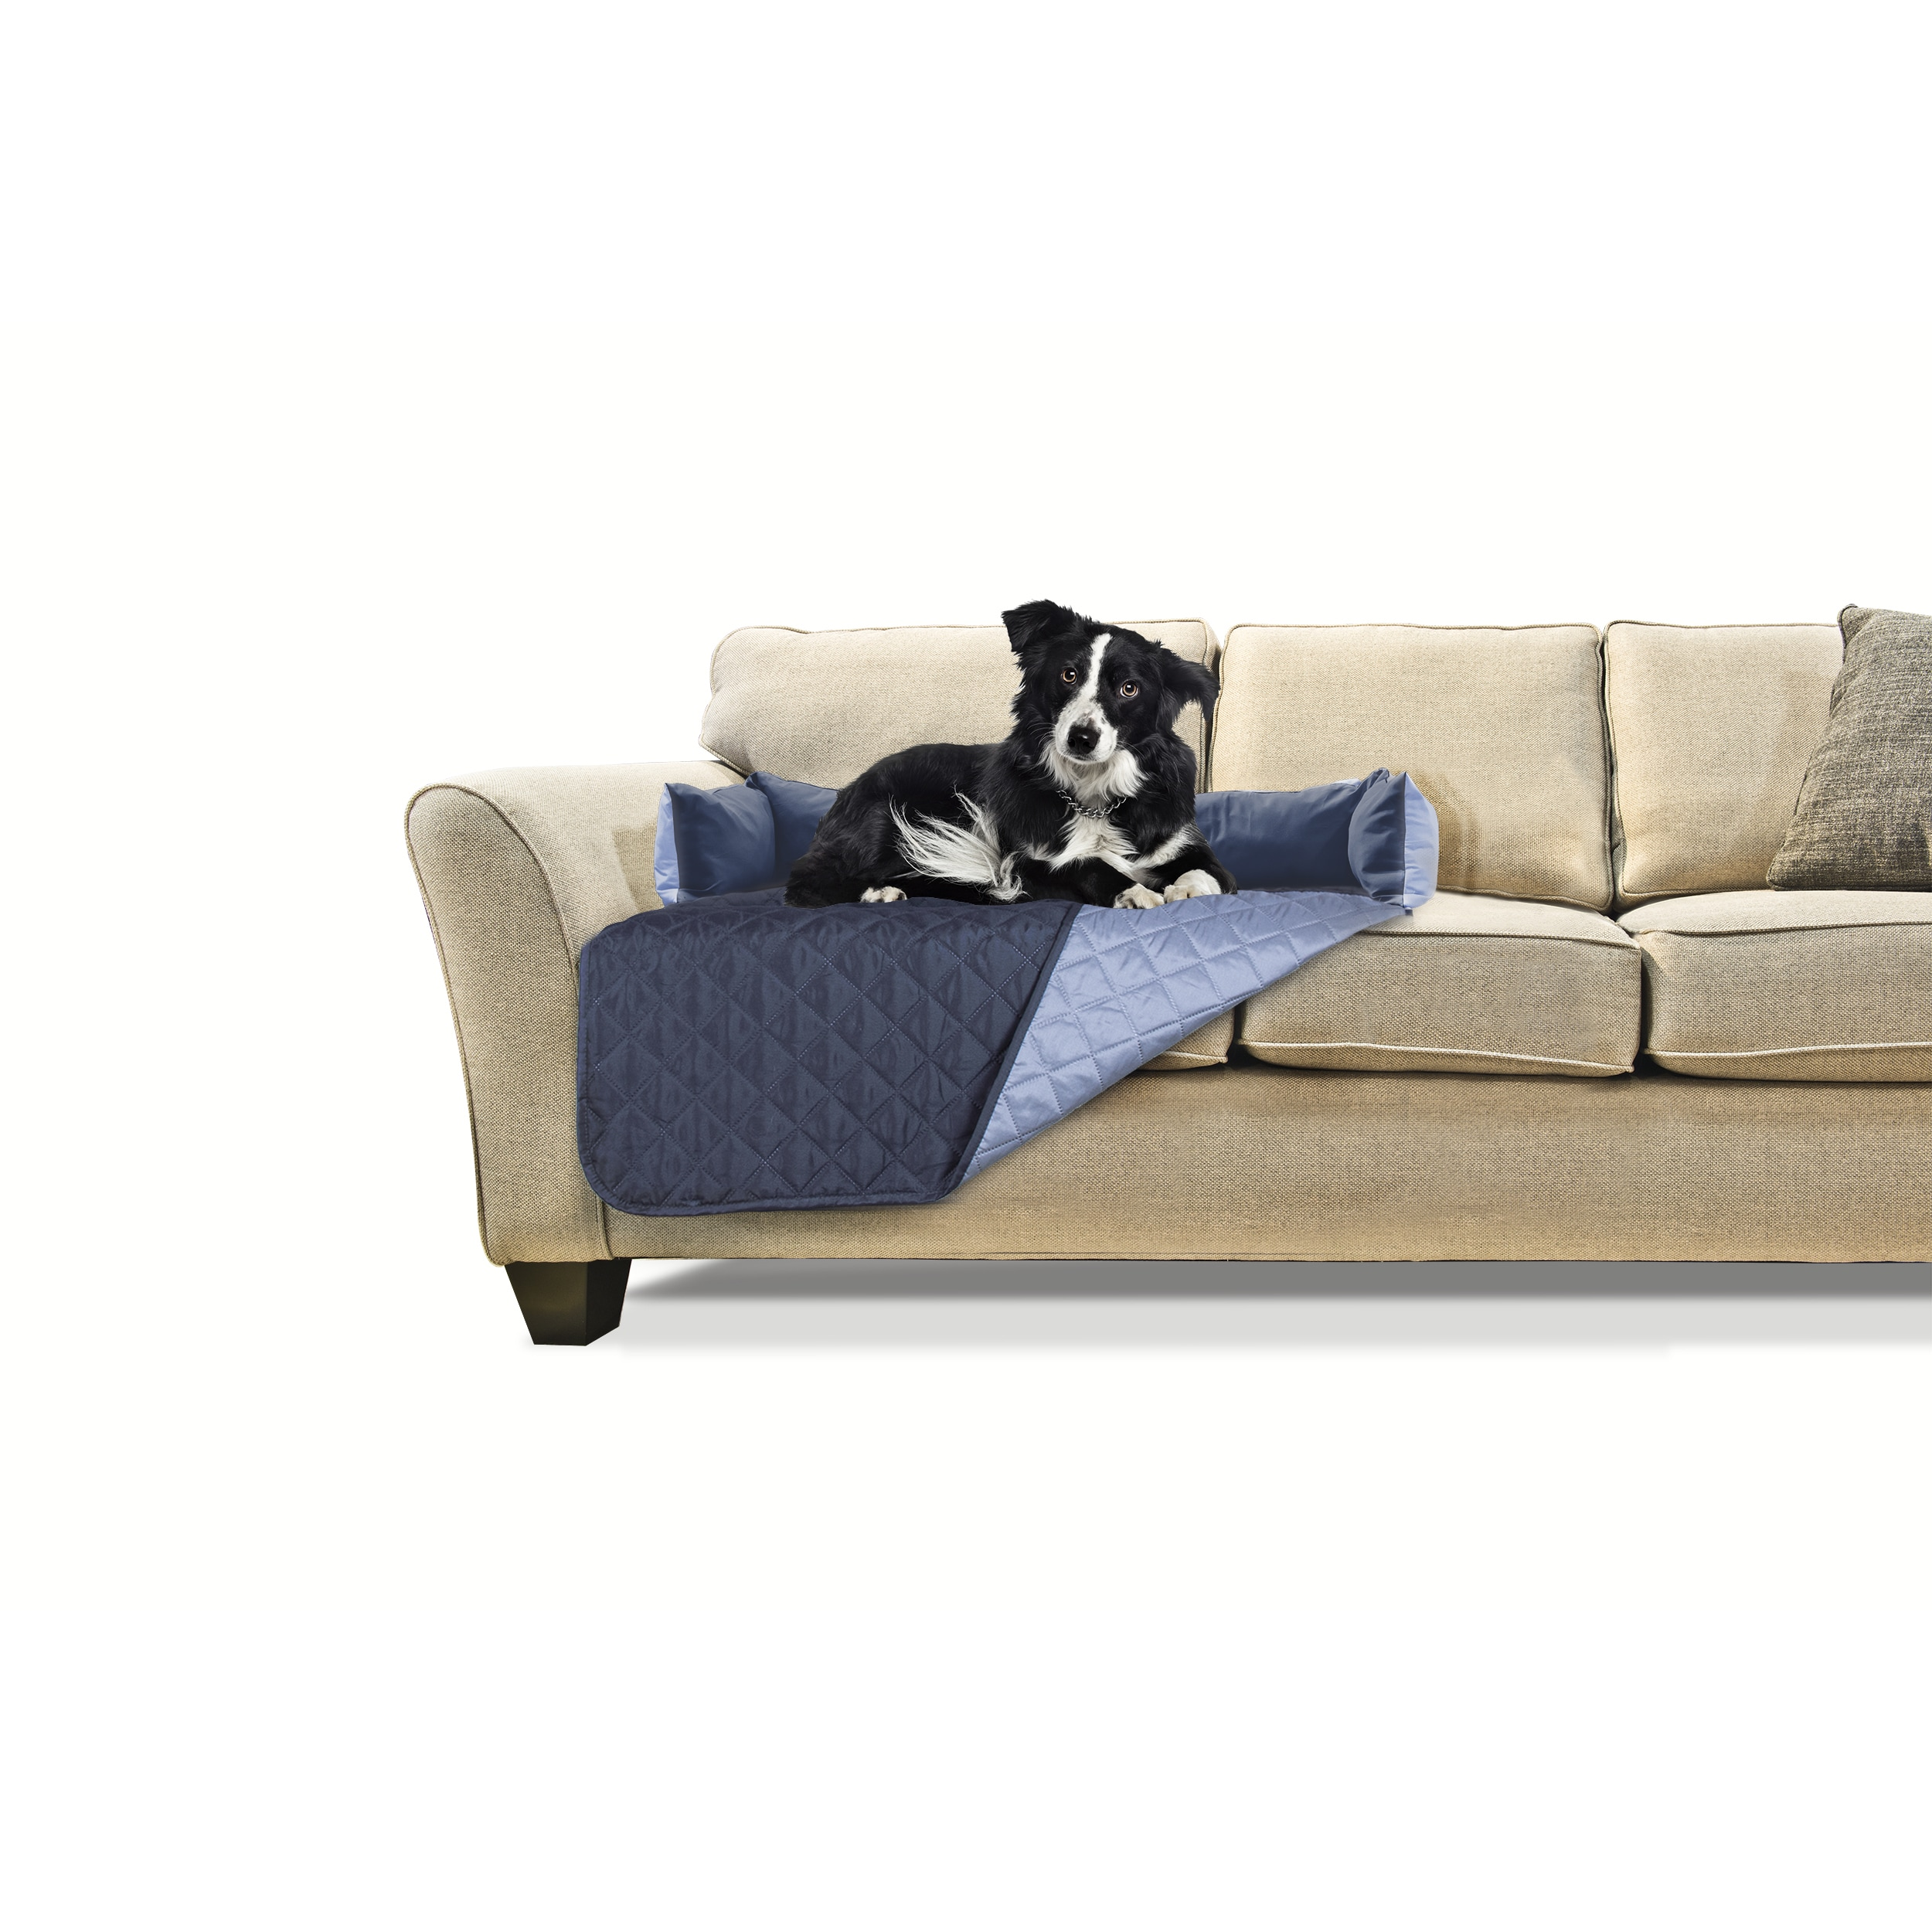 FurHaven Sofa Buddy Pet Bed Furniture Cover - Free Shipping On Orders Over  $45 - Overstock.com - 19880567